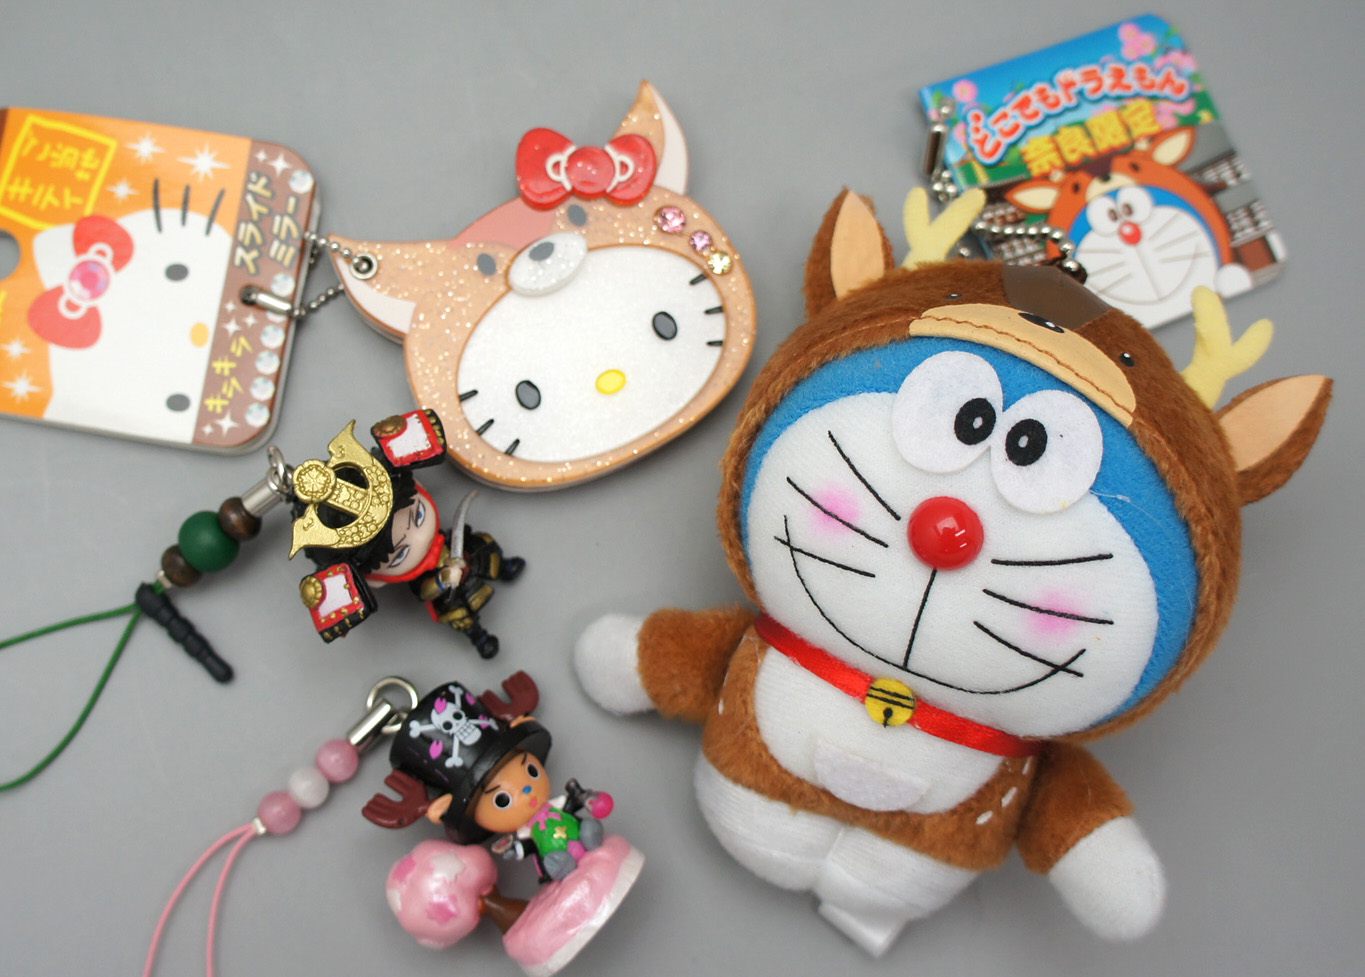 Japanese animation items